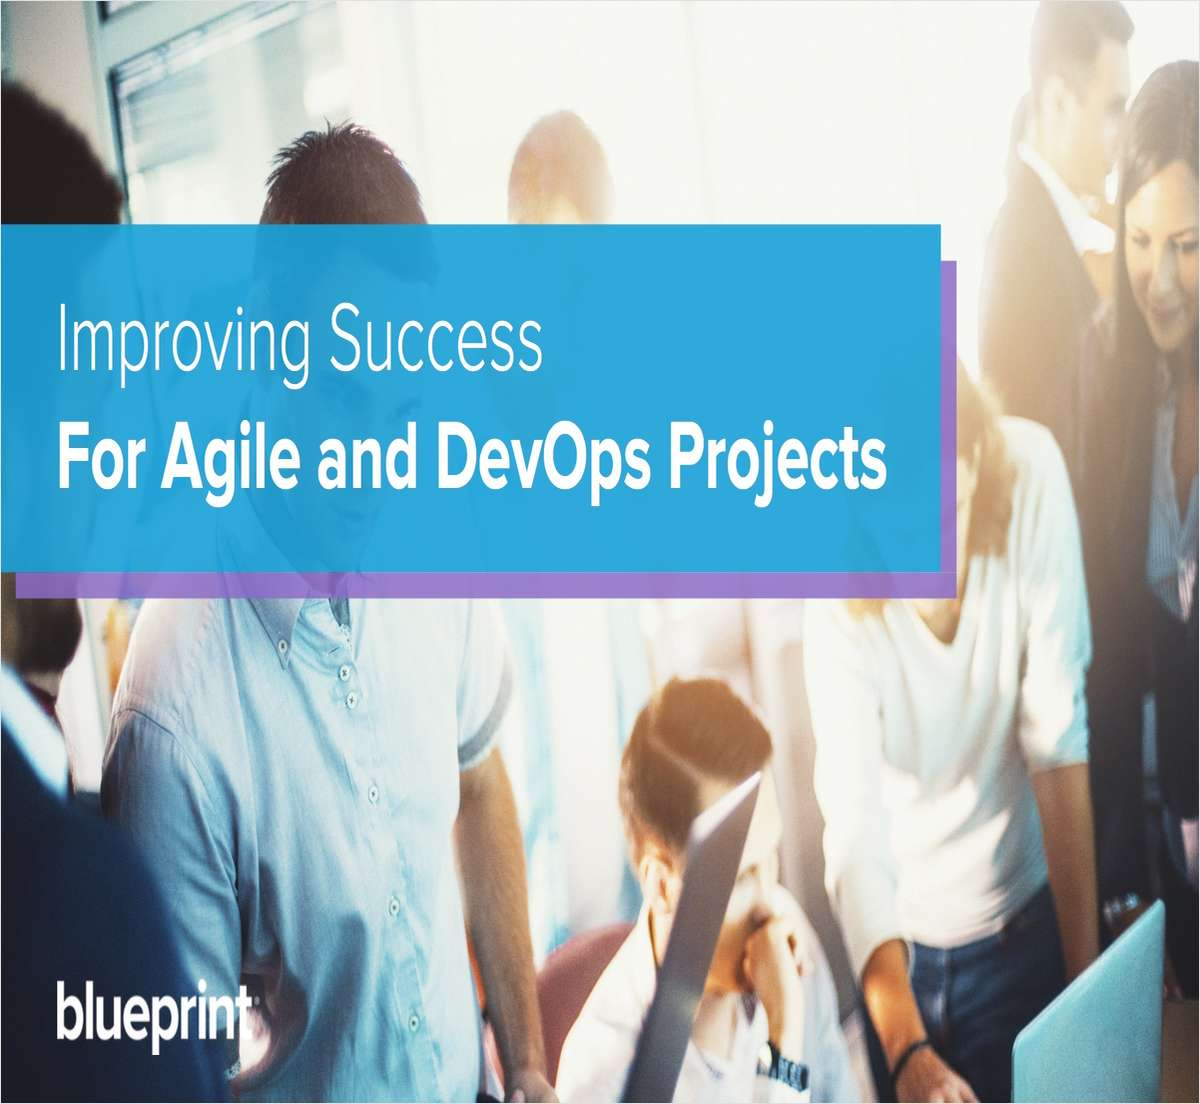 Improving Success for Agile and DevOps Projects